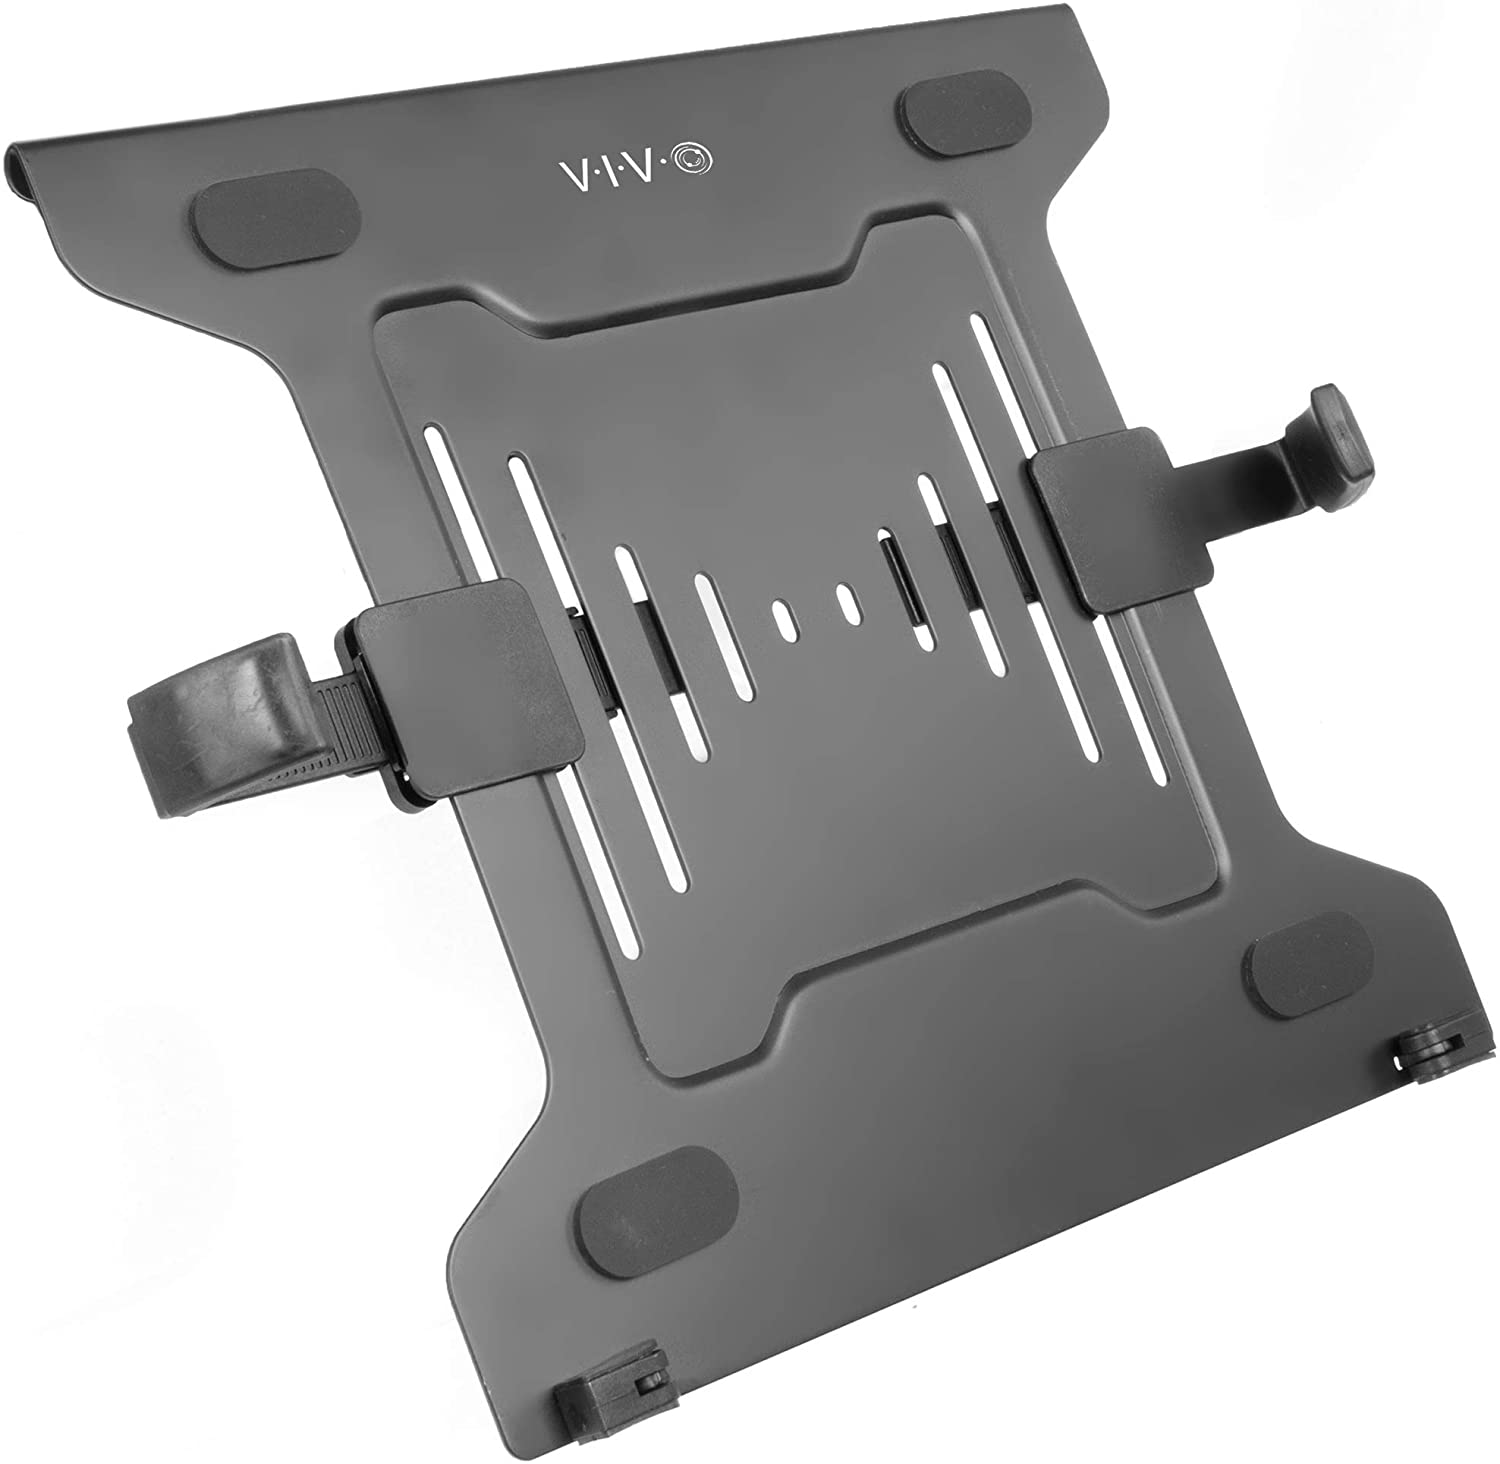 VIVO Universal Adjustable 10 to 15.6 inch Laptop Mount Holder for VESA Compatible Monitor Arms, Notebook Tray (Stand-LAP3)